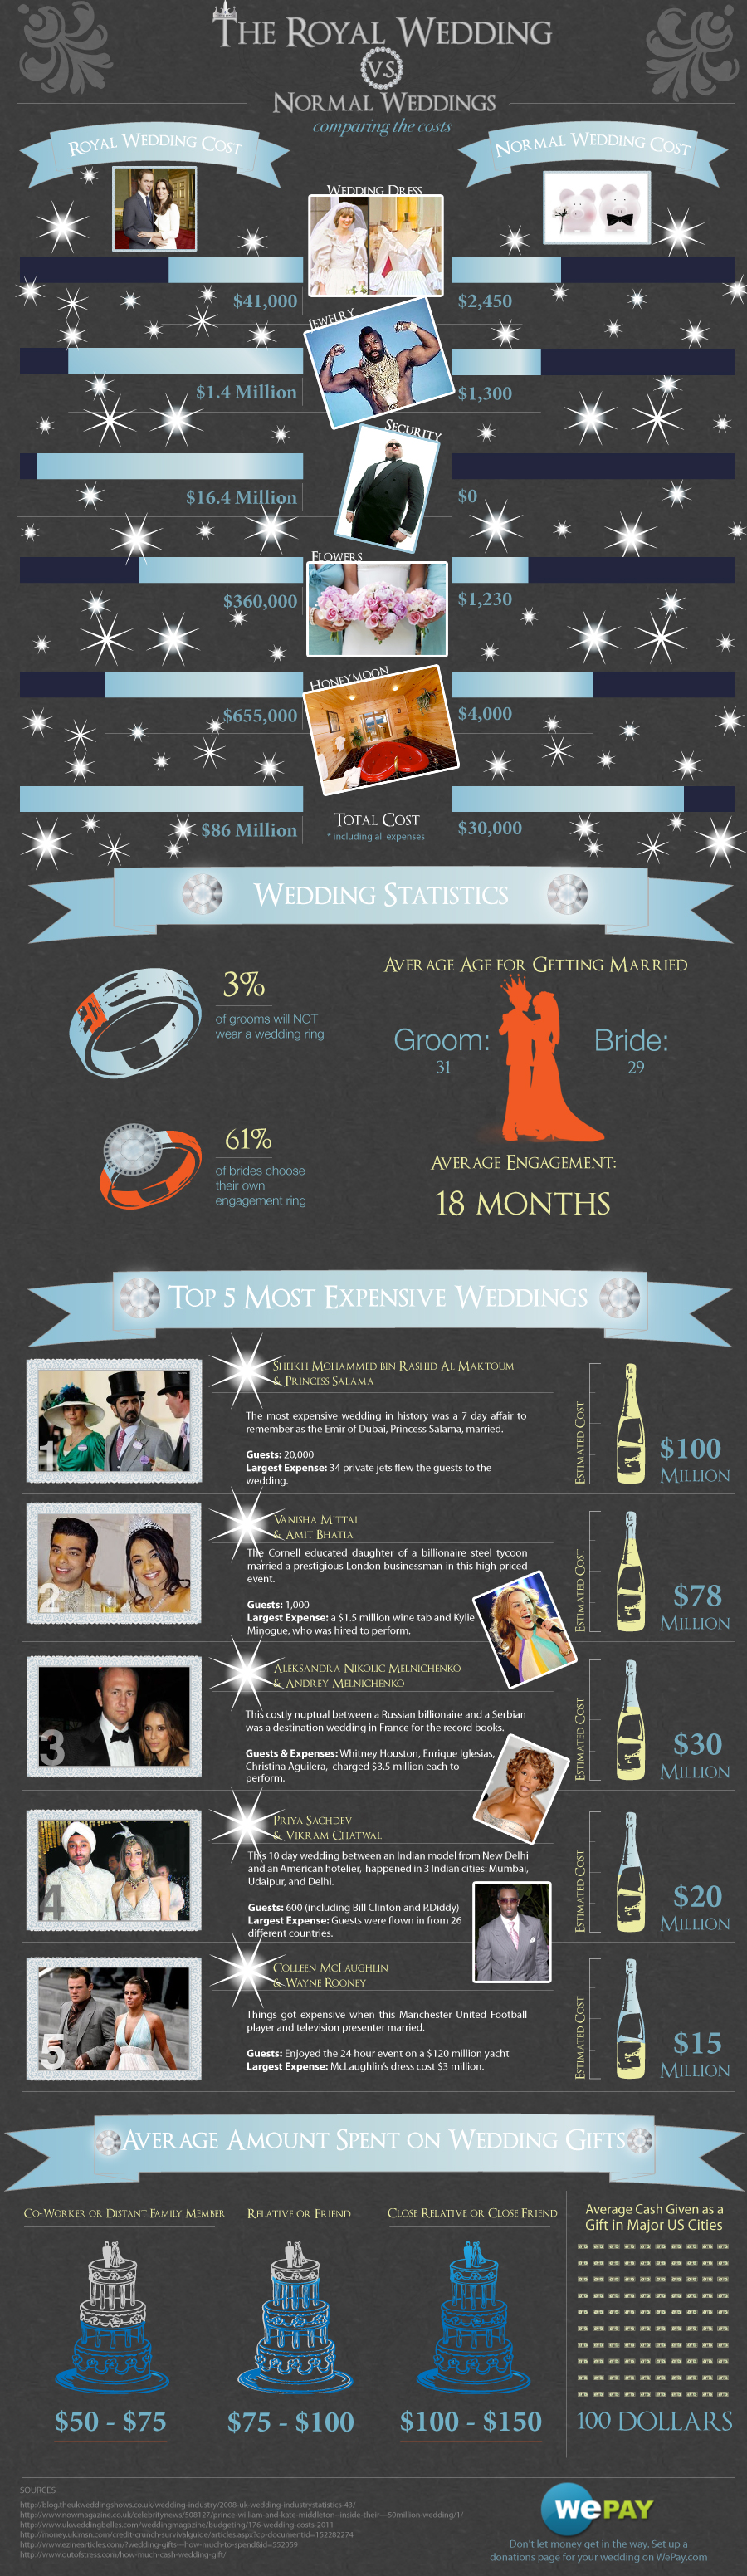 "Royal vs normal wedding costs"" width=300"